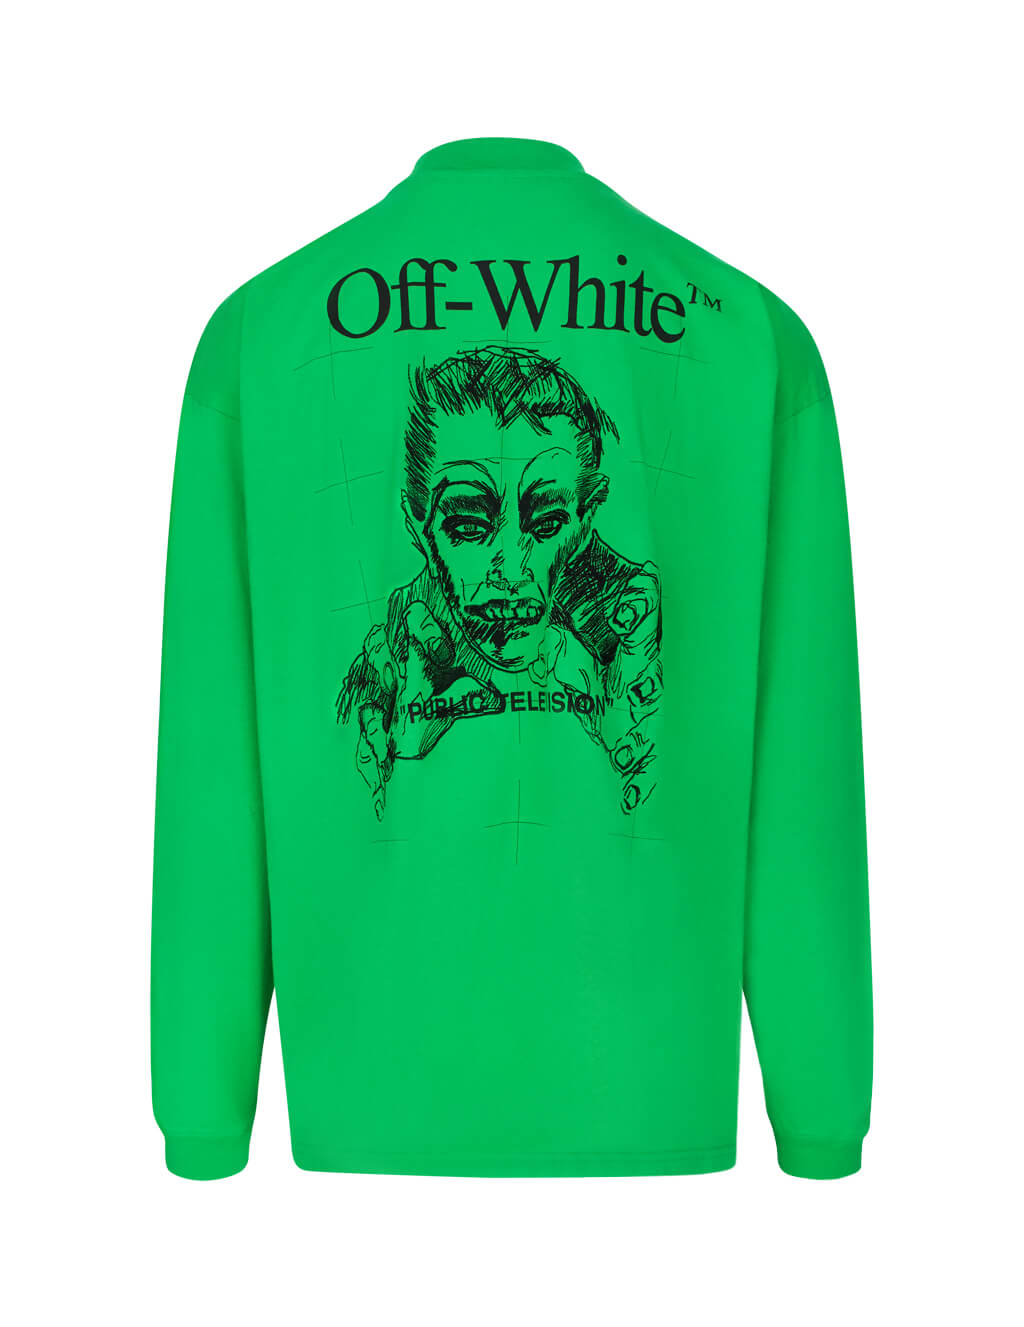 Off-White Men's Giulio Fashion Green Public Television T-Shirt OMAB032F191850184010